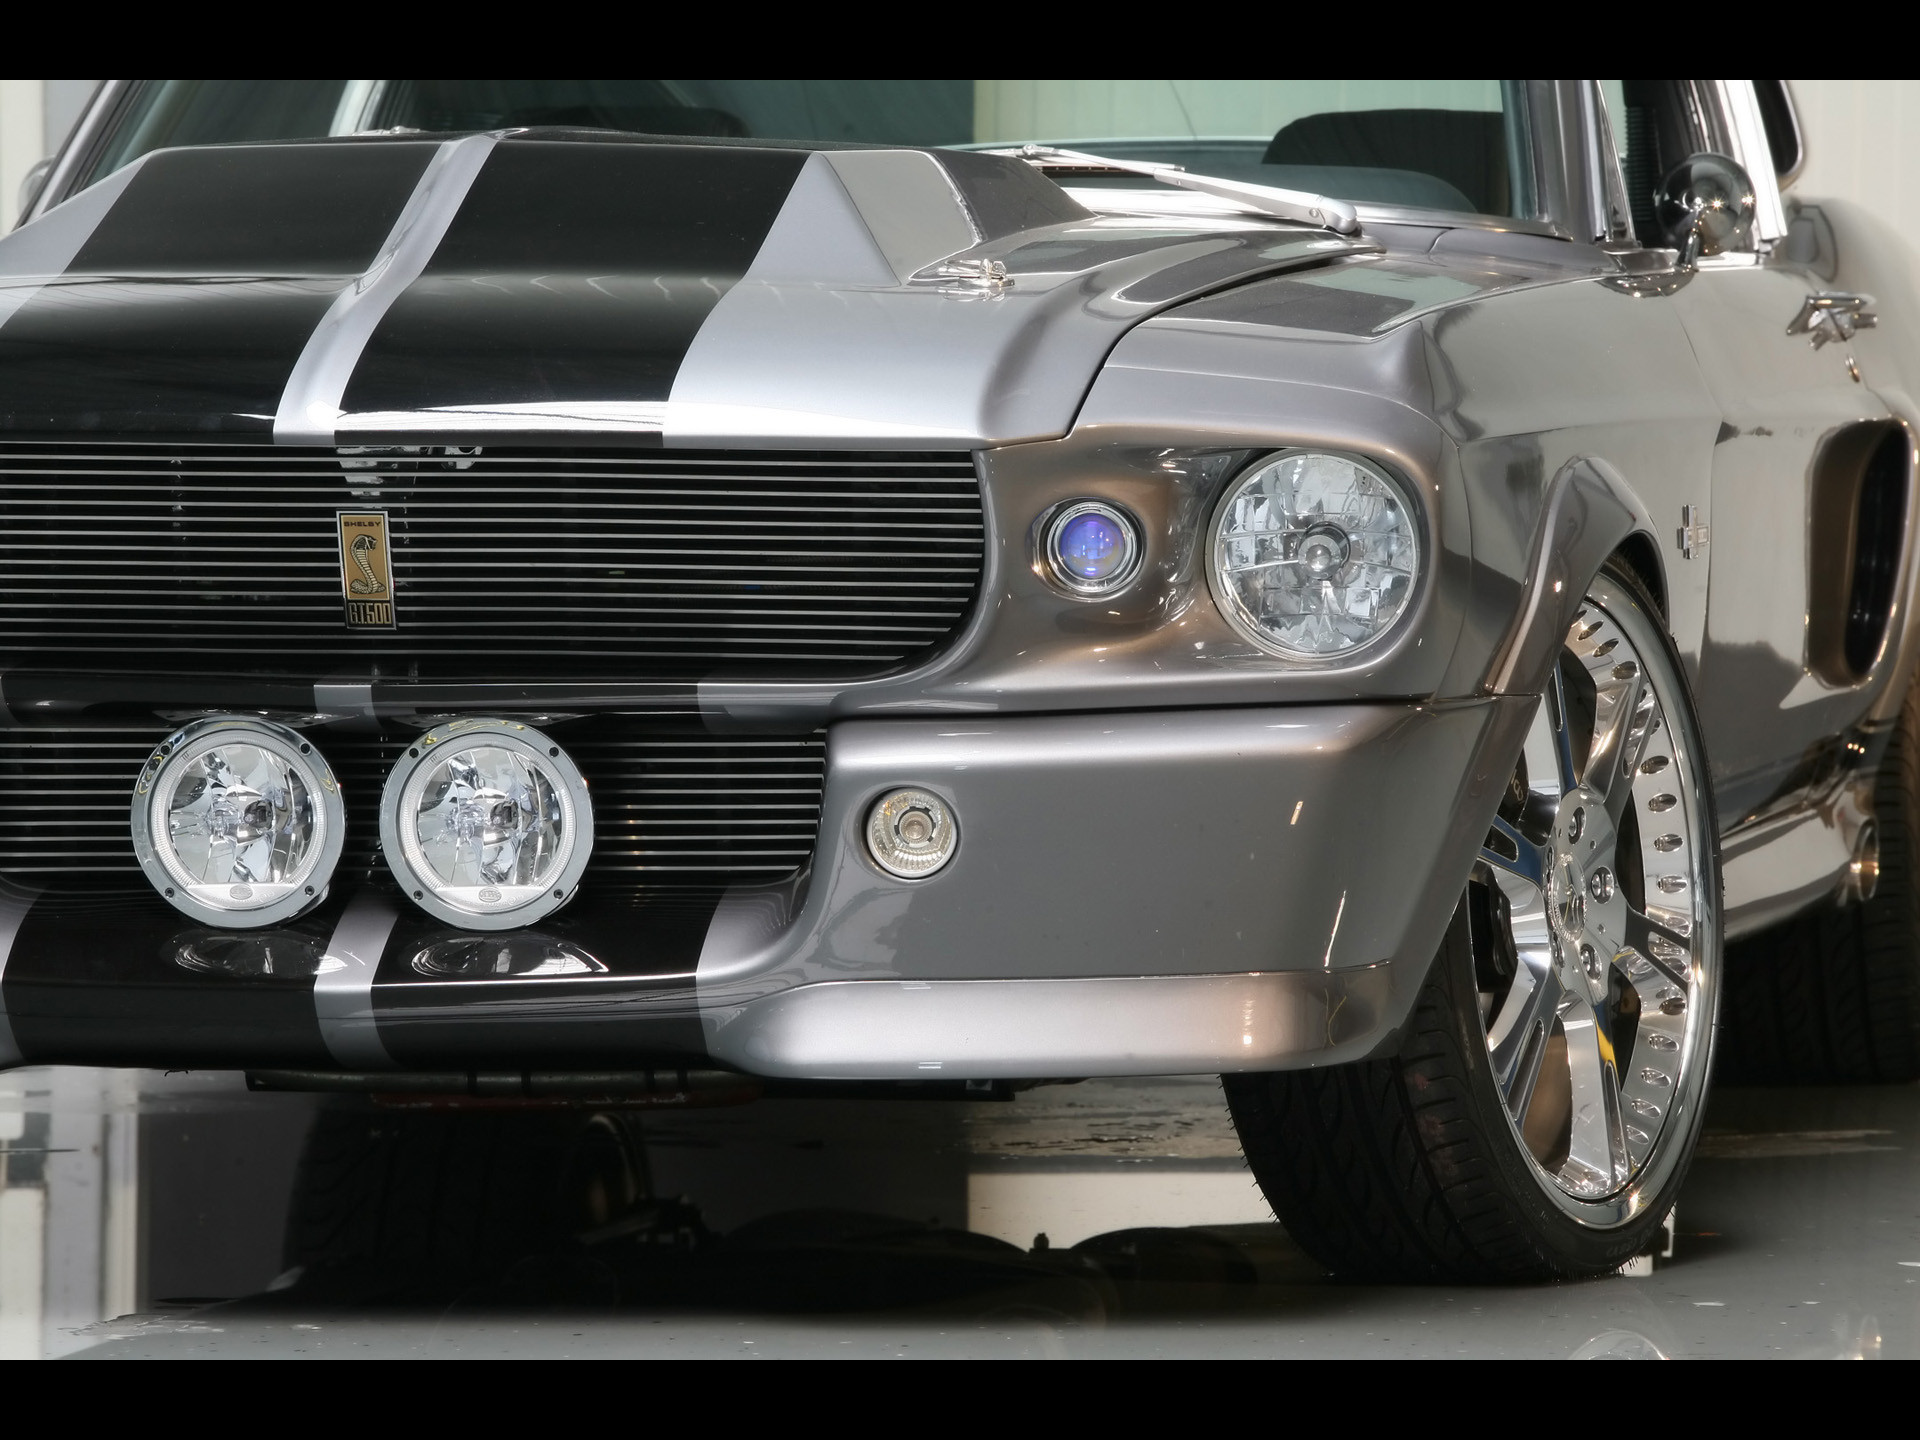 … www.auto-power-girl.com/high-resolution-wallpapers /wheelsandmore-mustang-shelby-gt500-eleanor/wheelsandmore-mustang-shelby- gt500-eleanor-2009-12.jpg) …